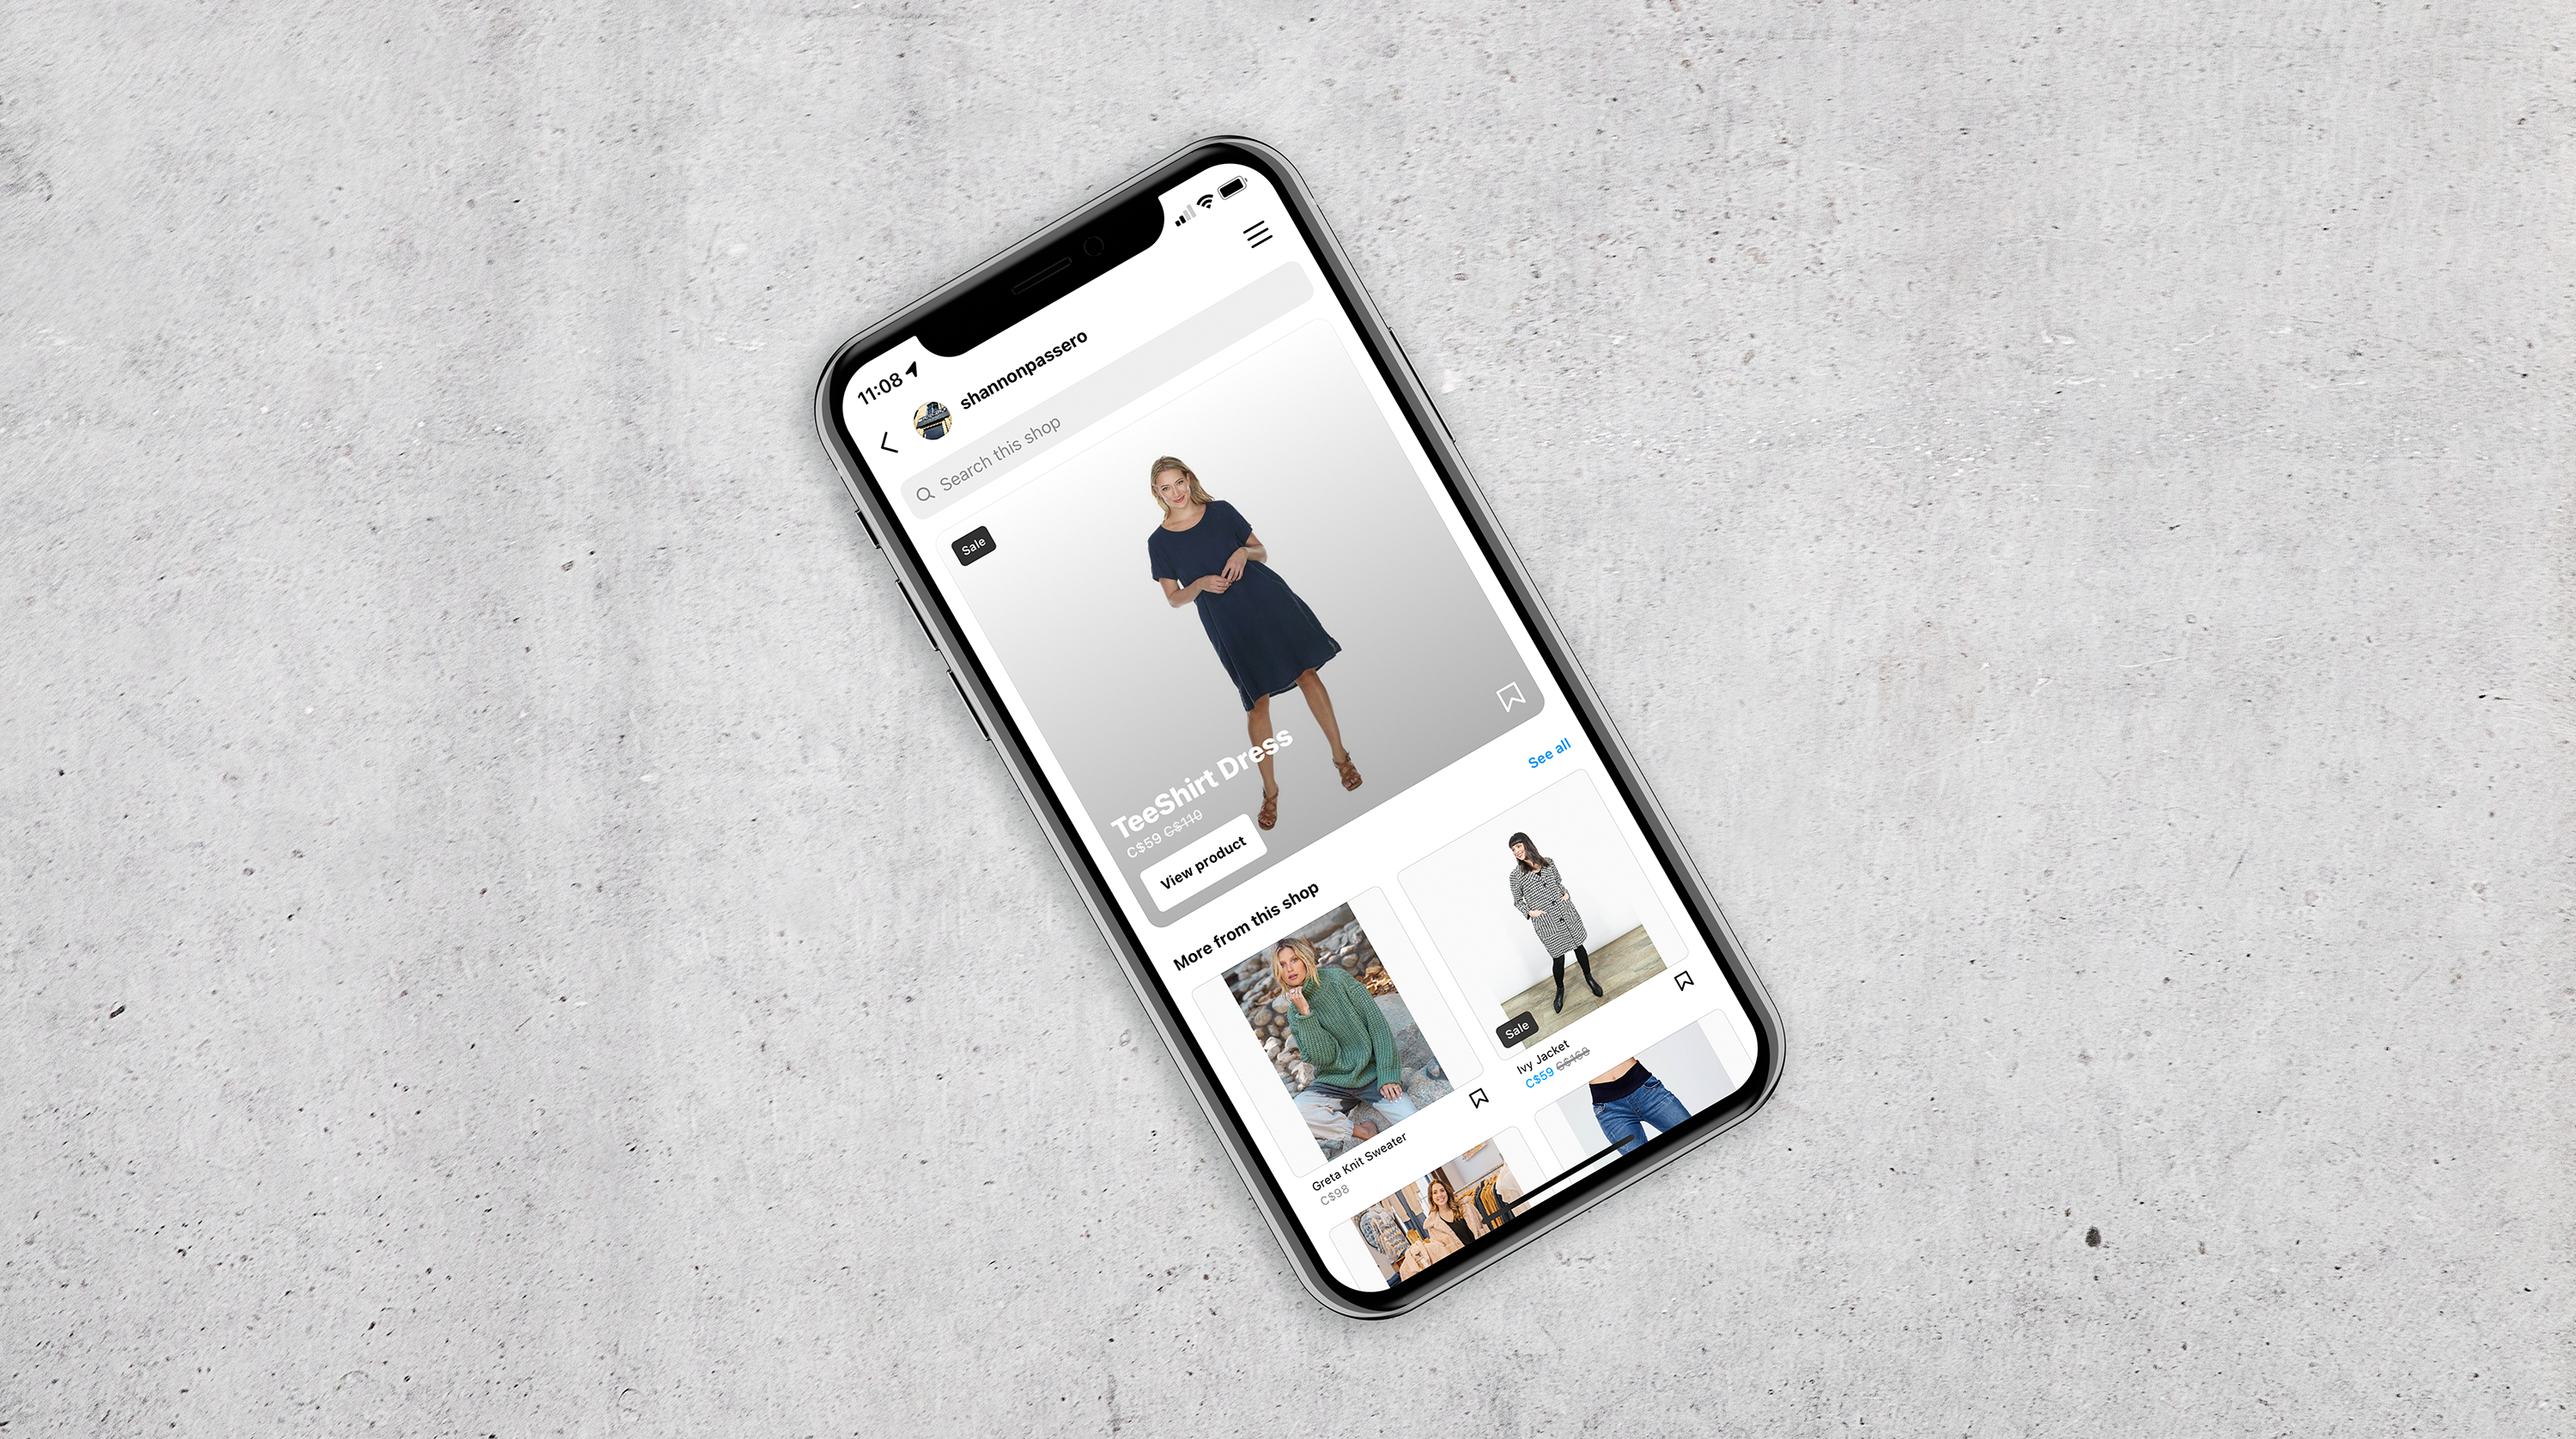 Selling Your Products on Instagram